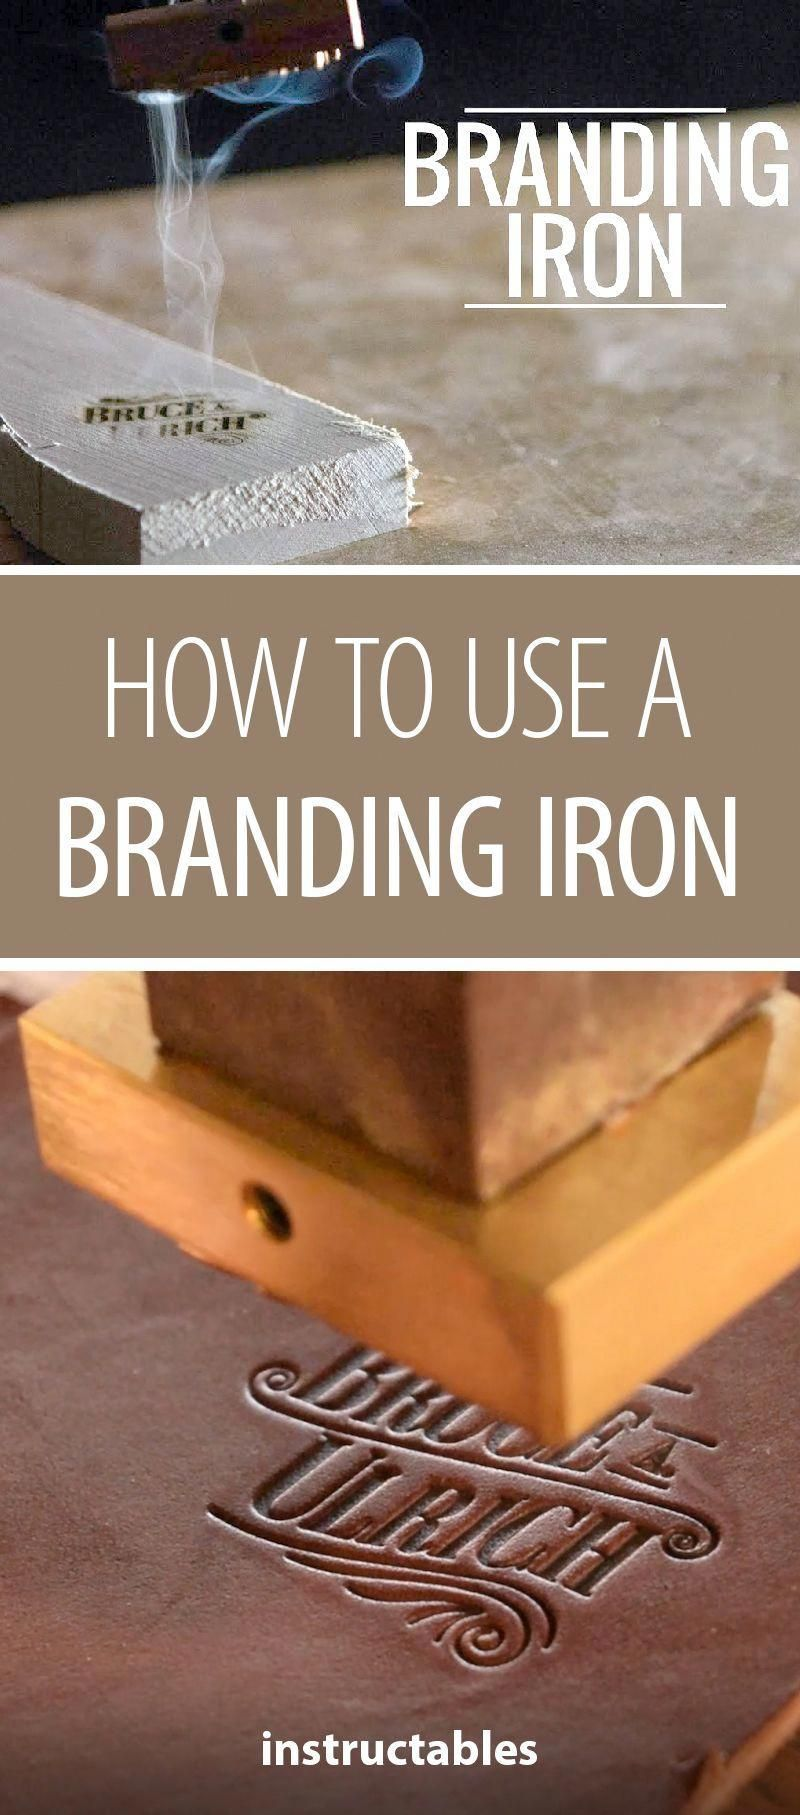 How to Use a Branding Iron #woodworking #workshop #DiyWoodProjectsEasyChristmasGifts